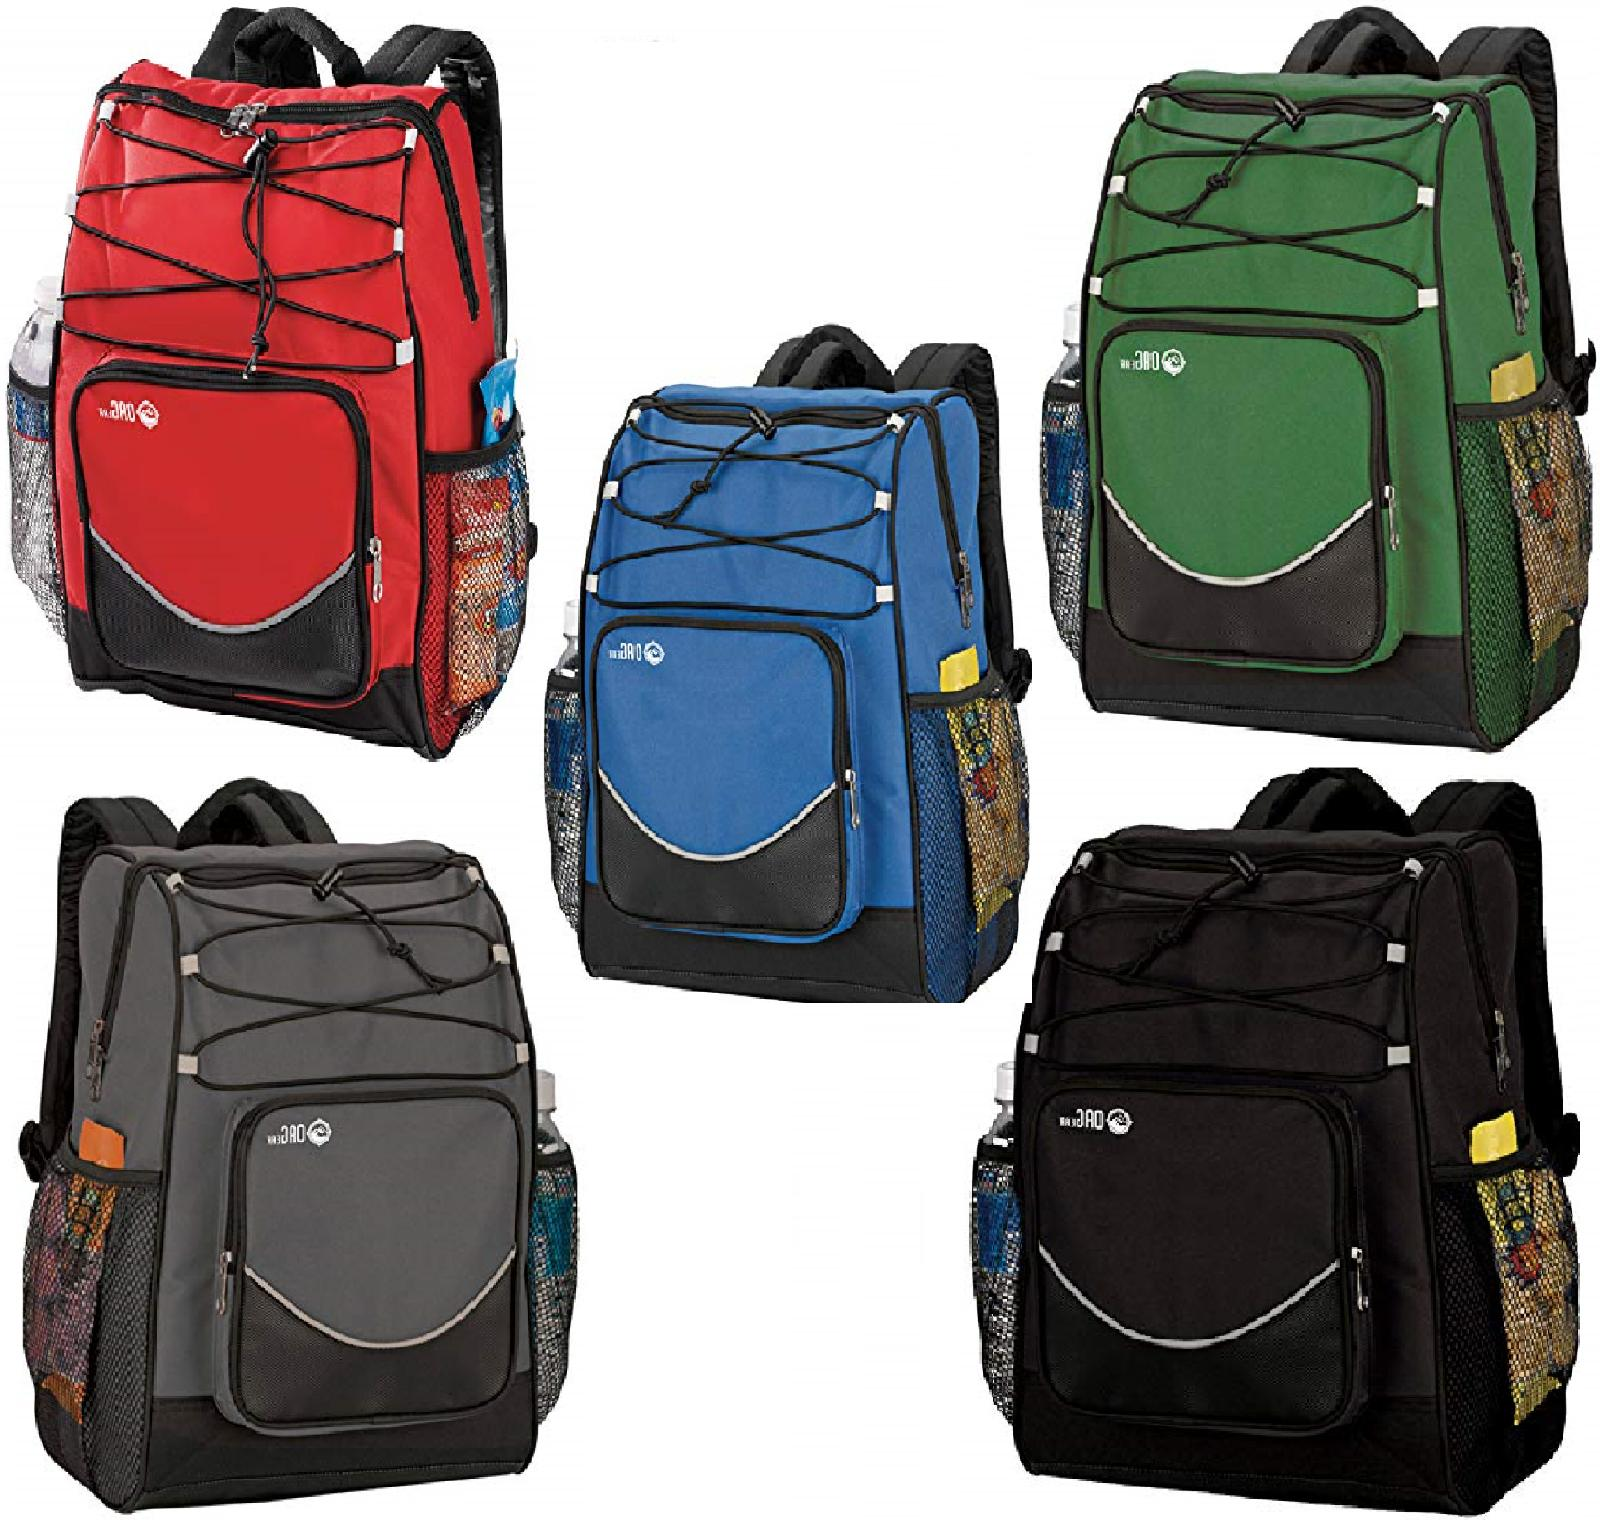 Backpack Cooler Bag Food Cool Insulated